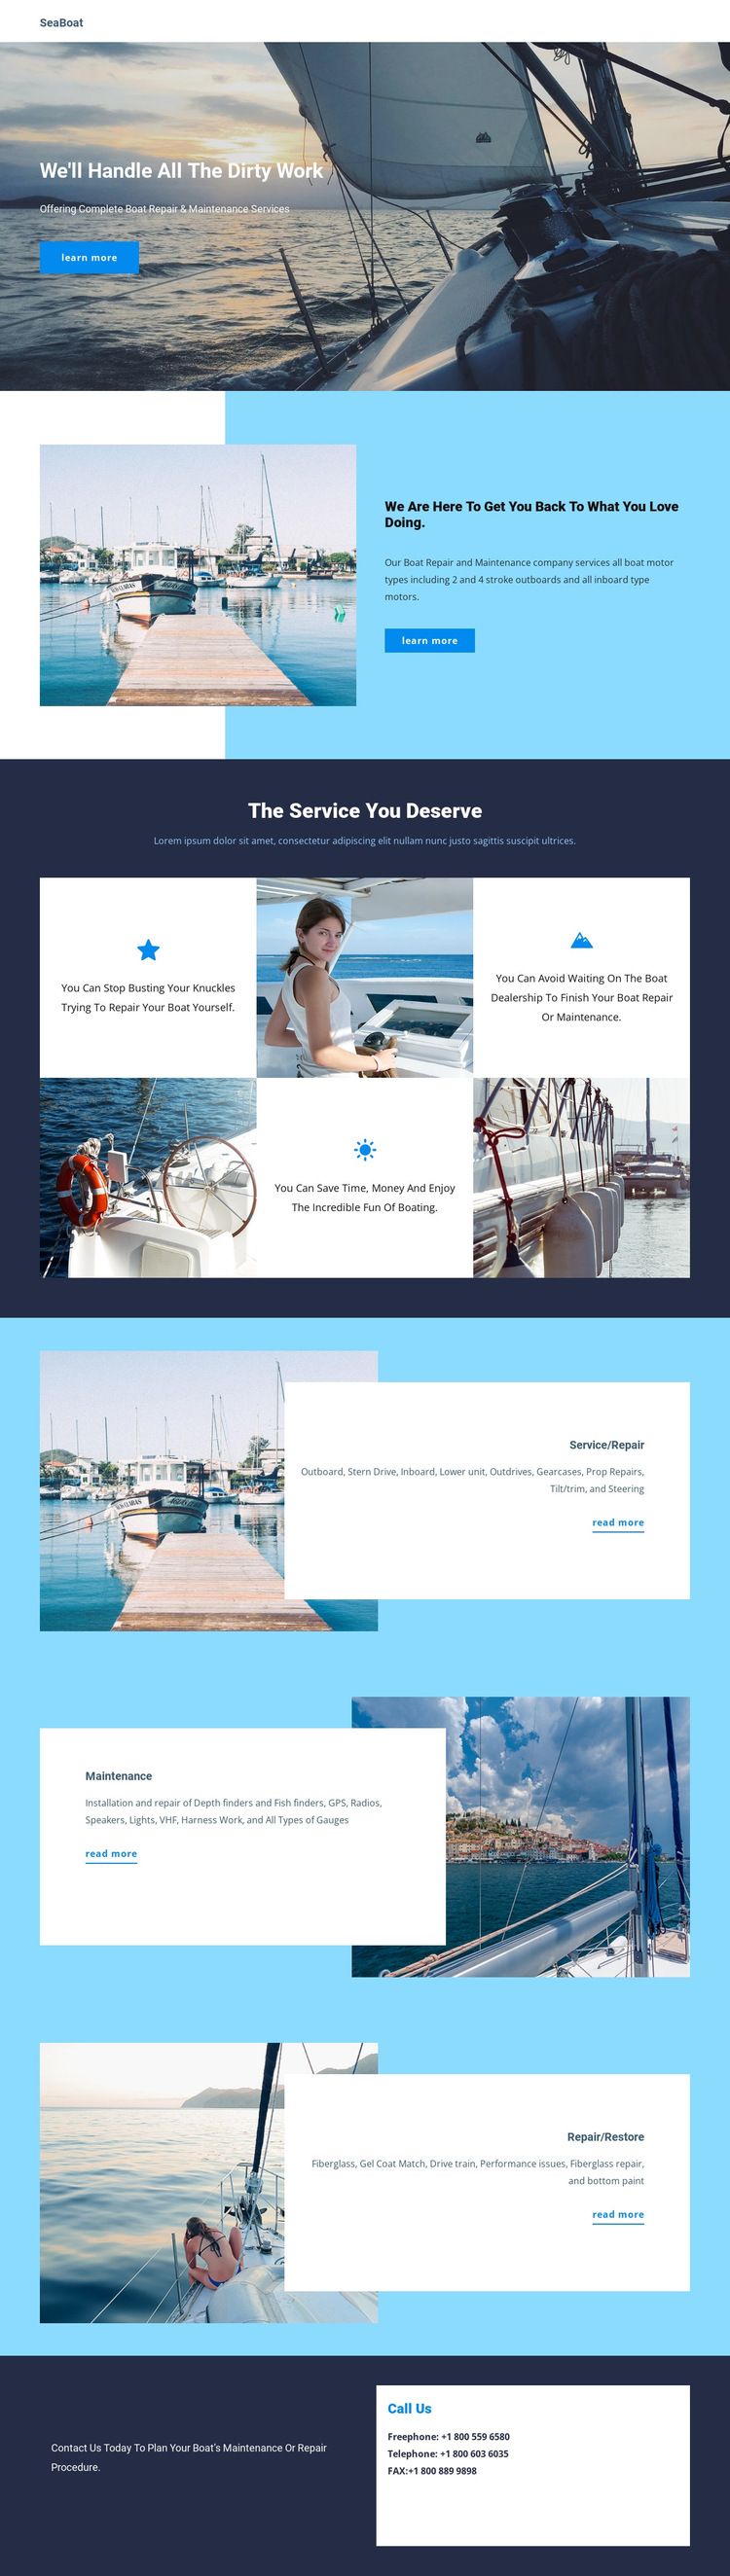 Travel on Seaboat HTML5 Template